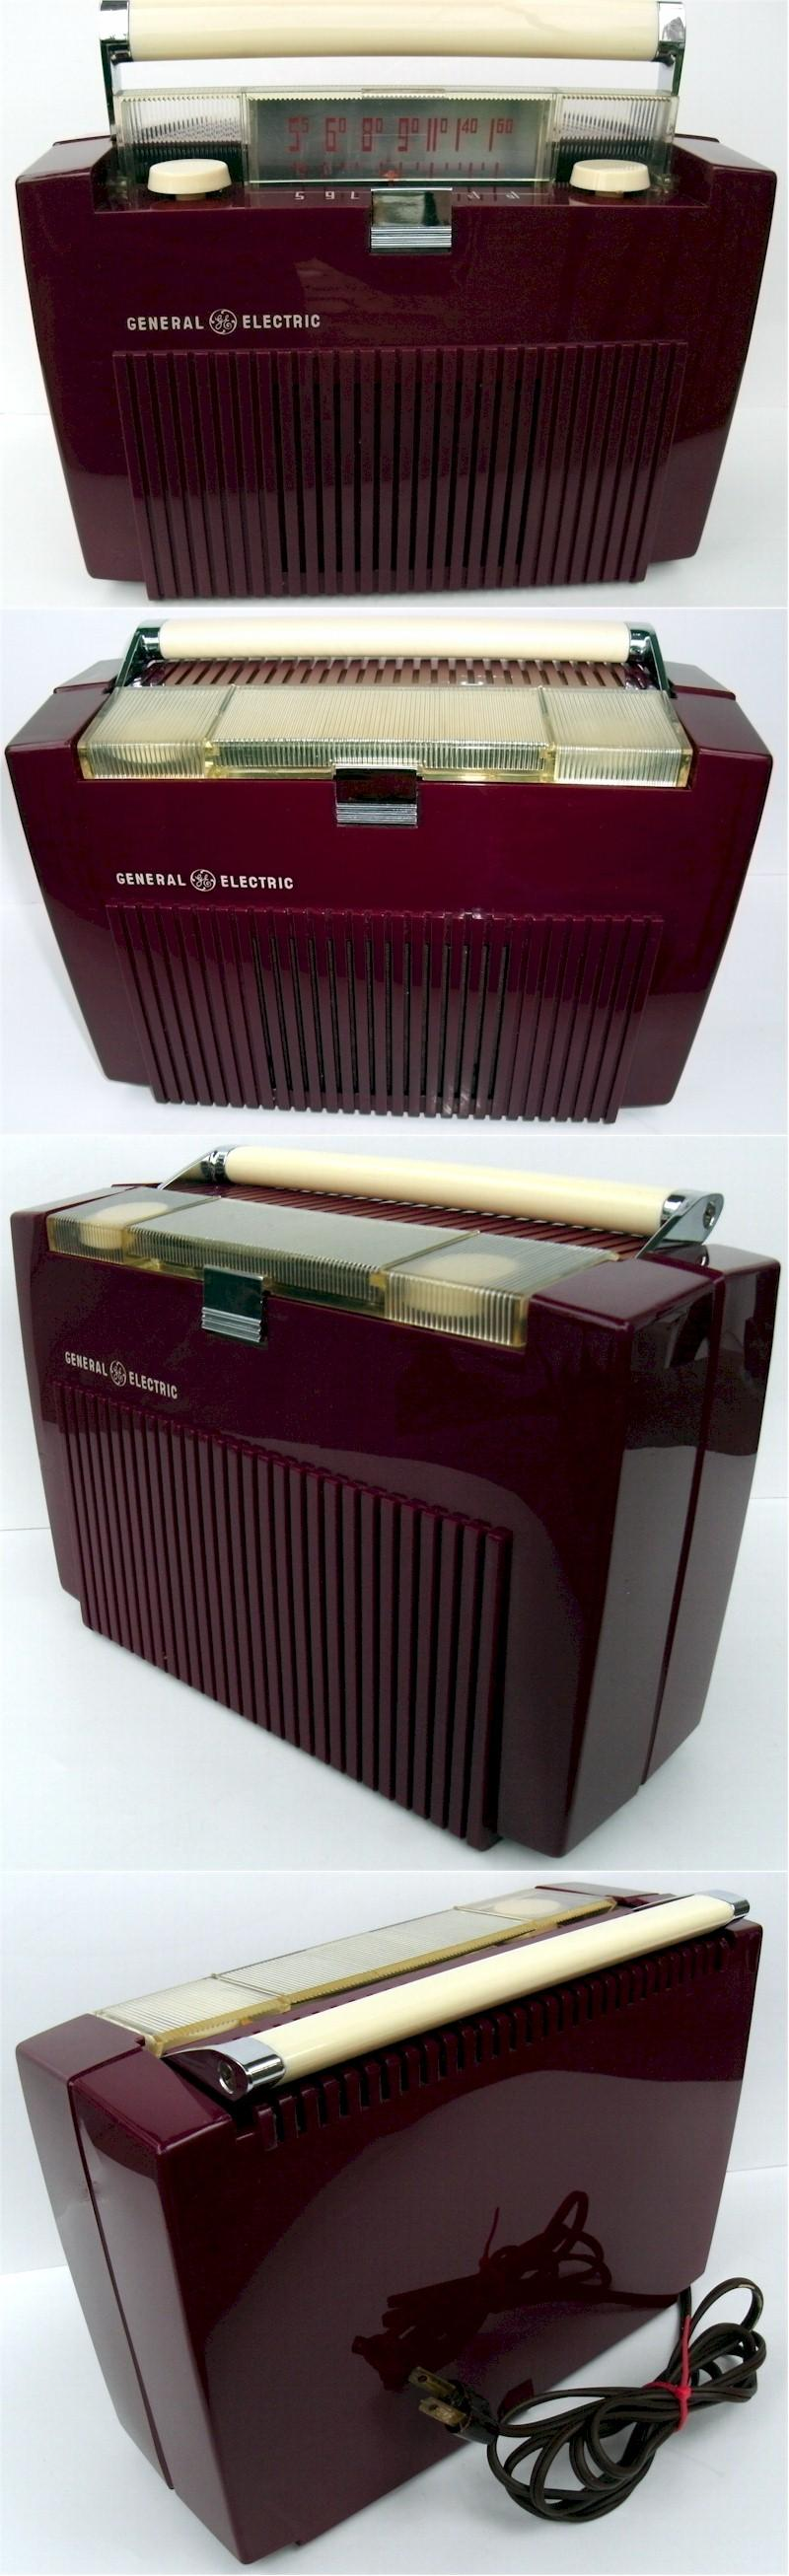 General Electric 607 Portable (1952)